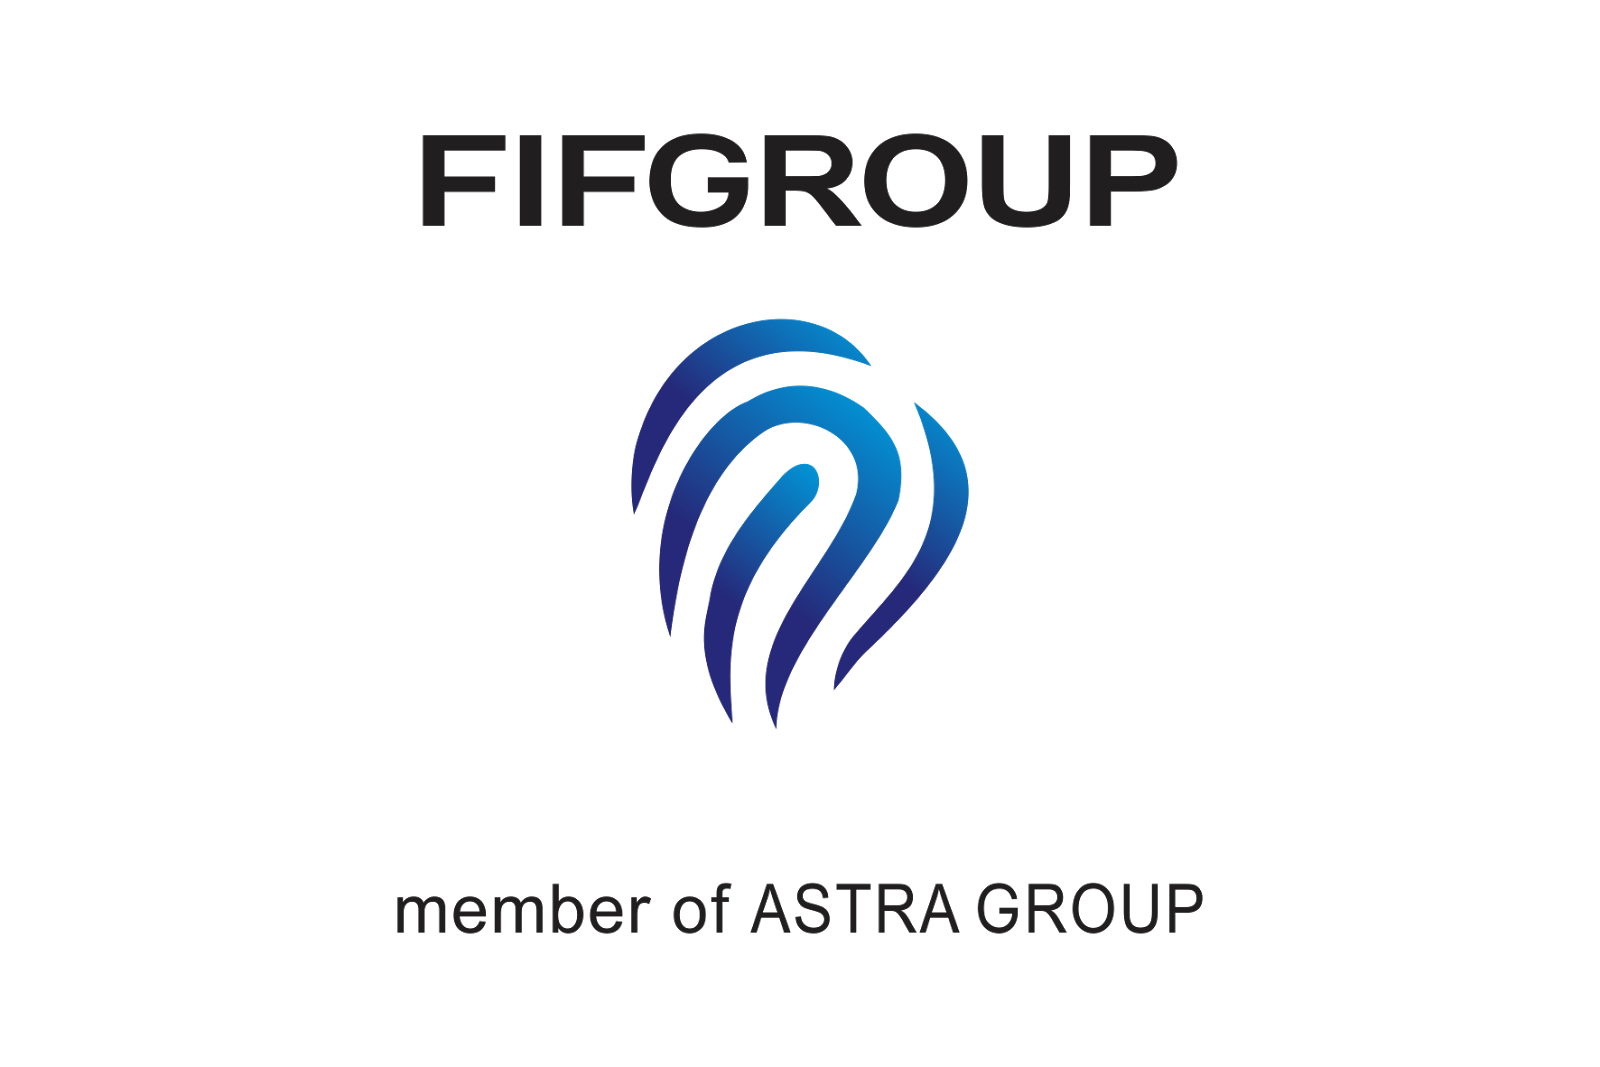 Fif . Group vector logo picture download